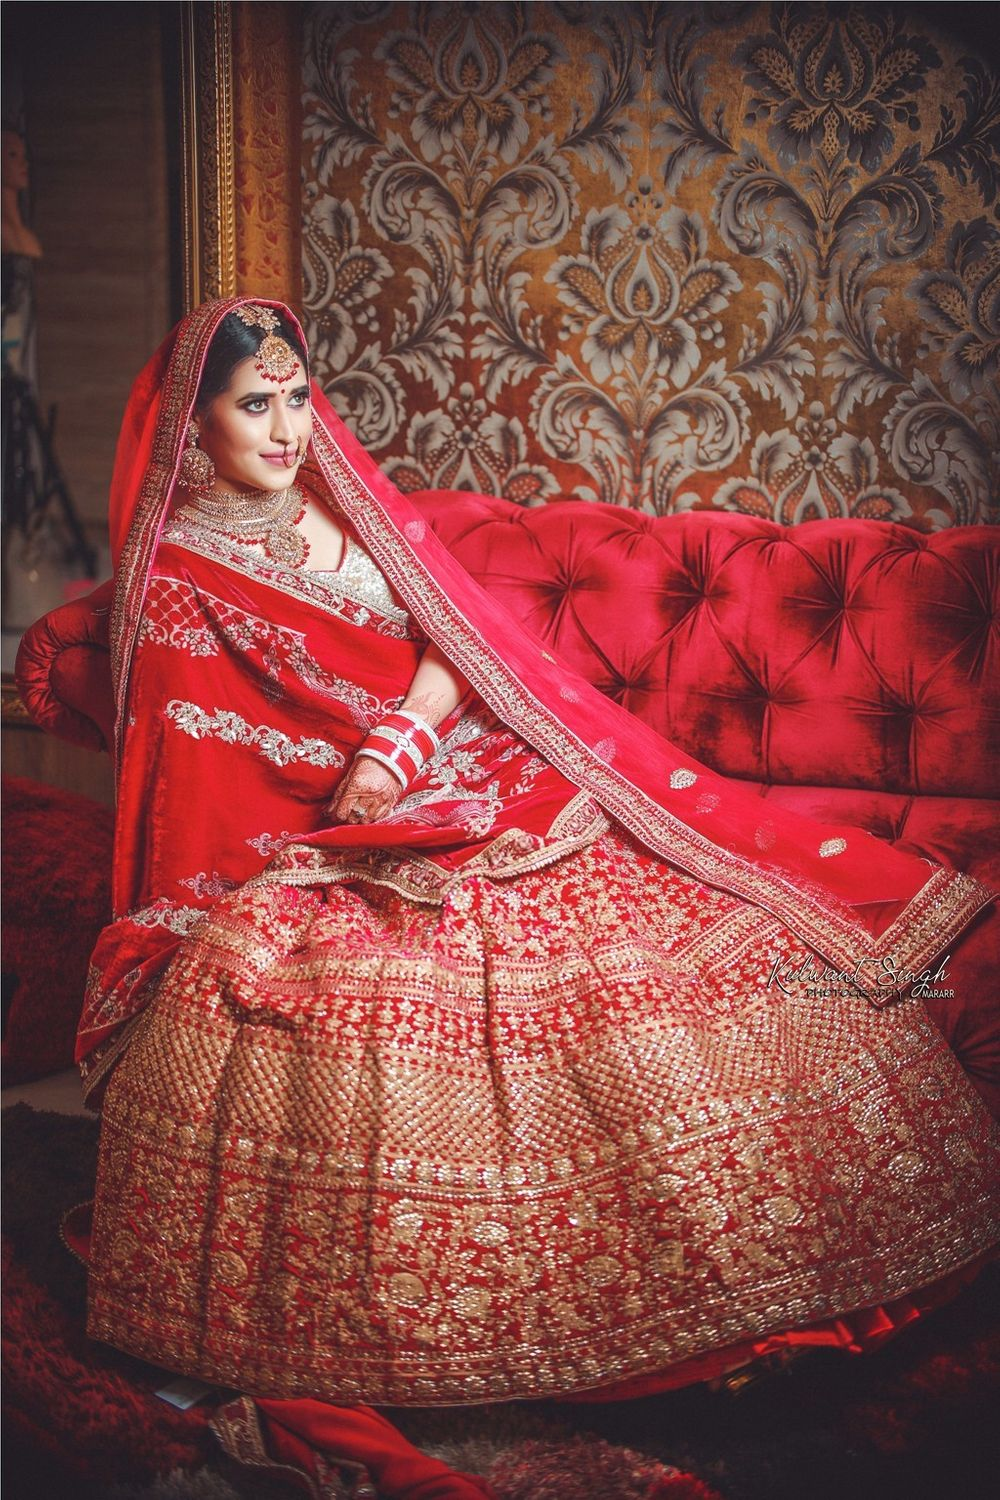 Photo of Bride sitting on sofa in bright red and gold lehenga